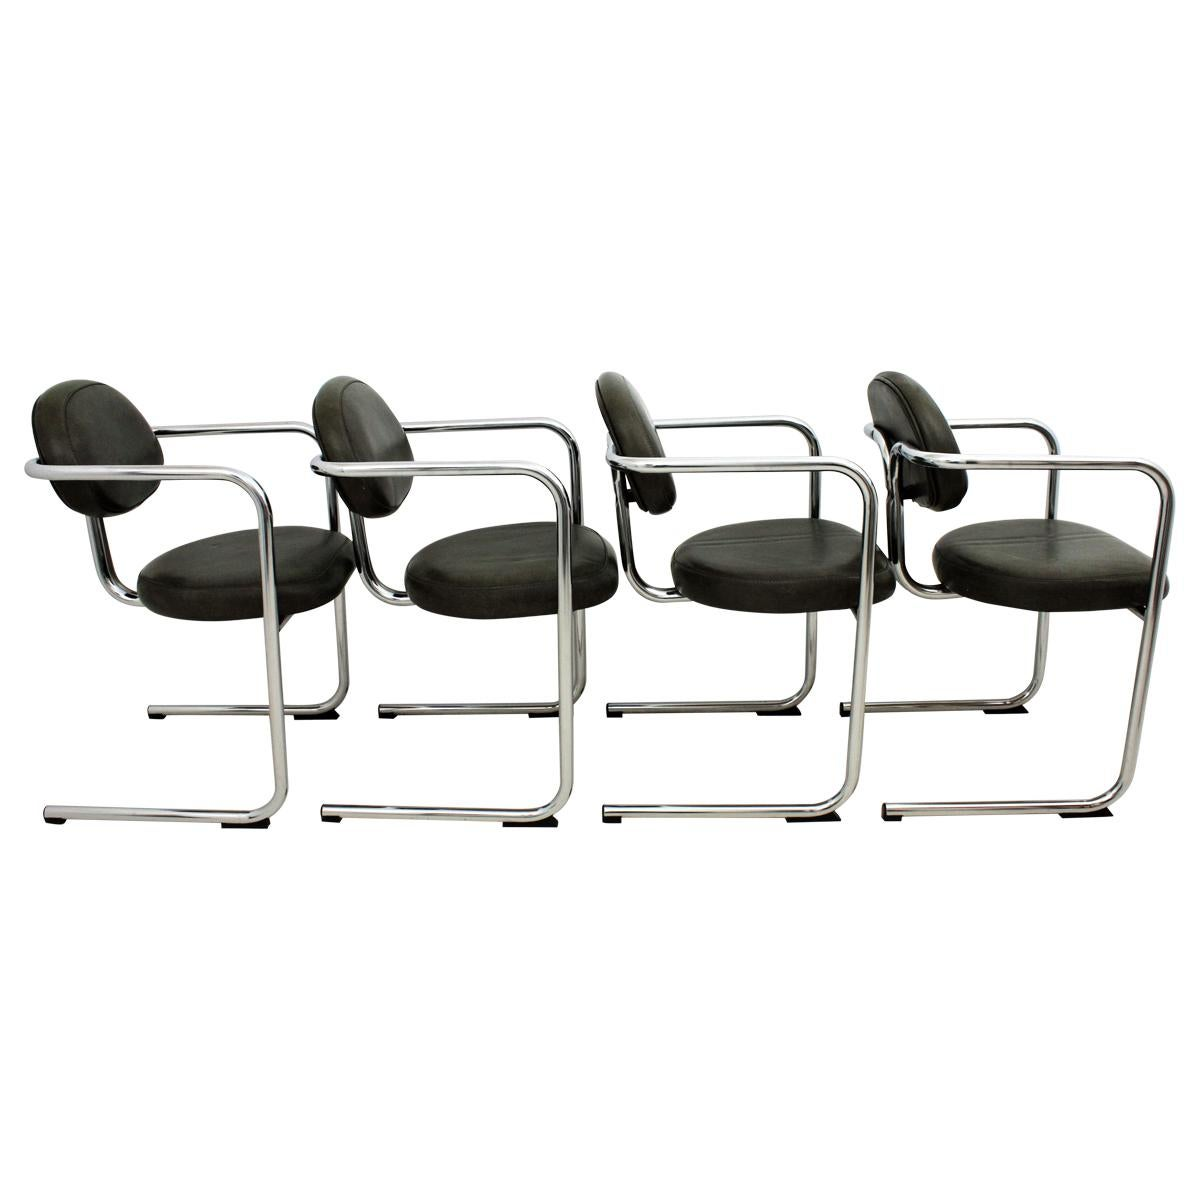 Bauhaus Style Tubular Chromed Steel Cantilever Armchairs, Set of Four